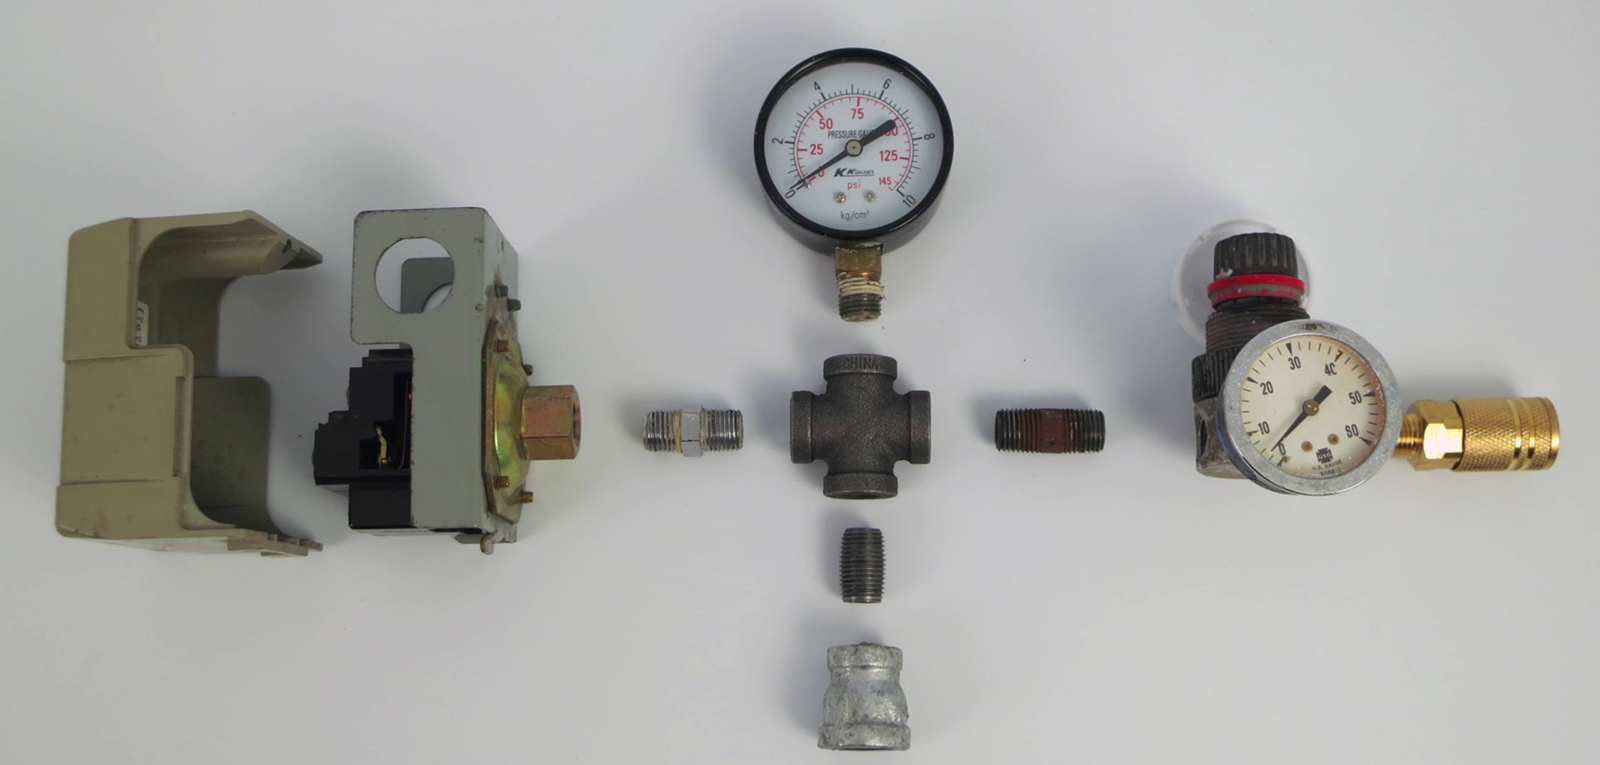 How to Build Your Own Ultra-Quiet Air Compressor - Core77